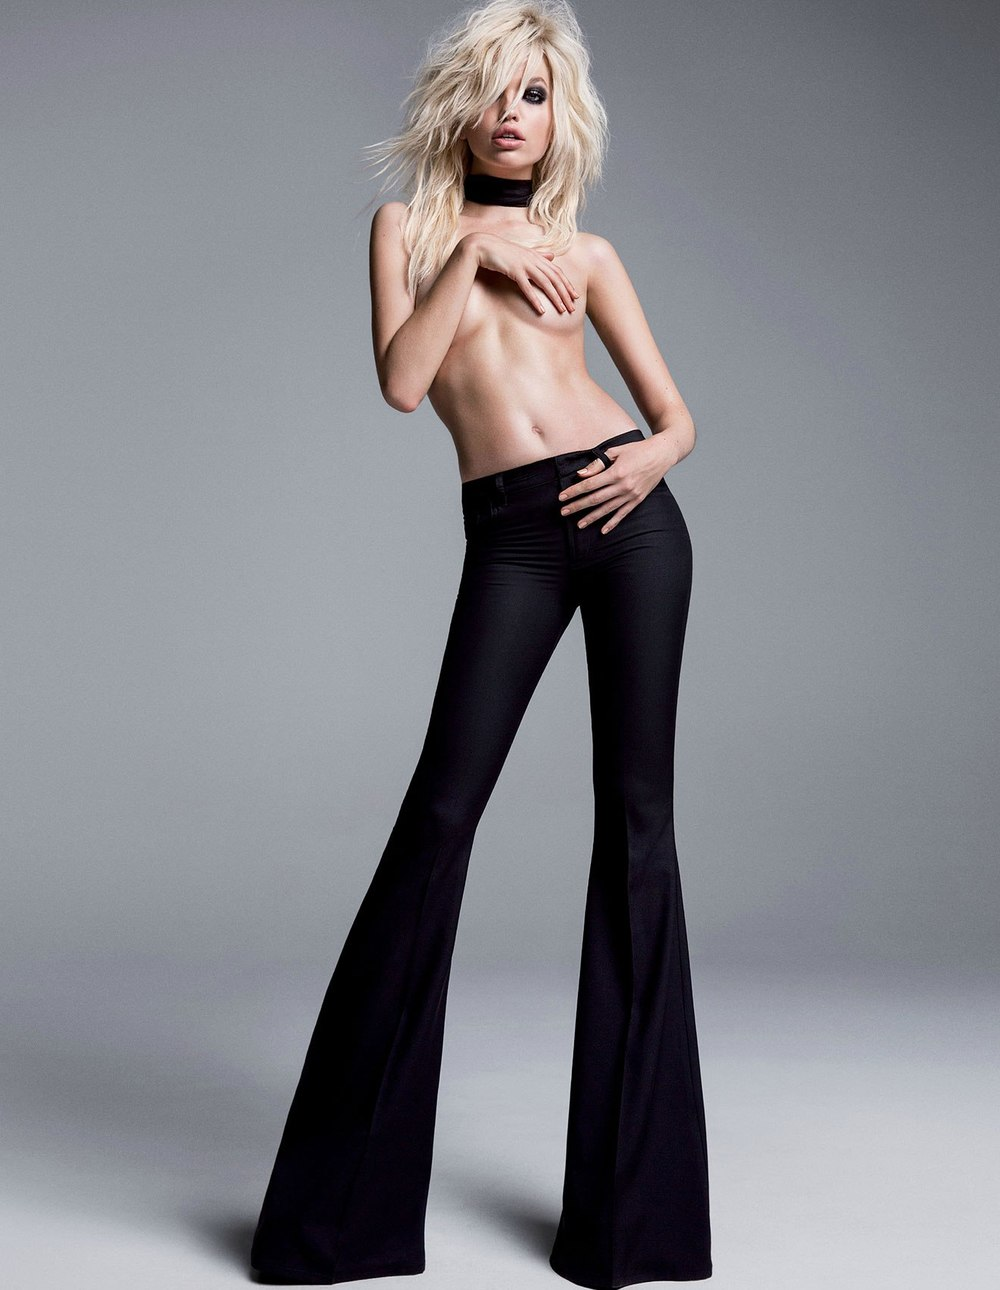 Daphne-Groeneveld-by-Inez-Vinoodh-for-the-Tom-Ford-Spring-Summer-2015-Campaigna.jpg